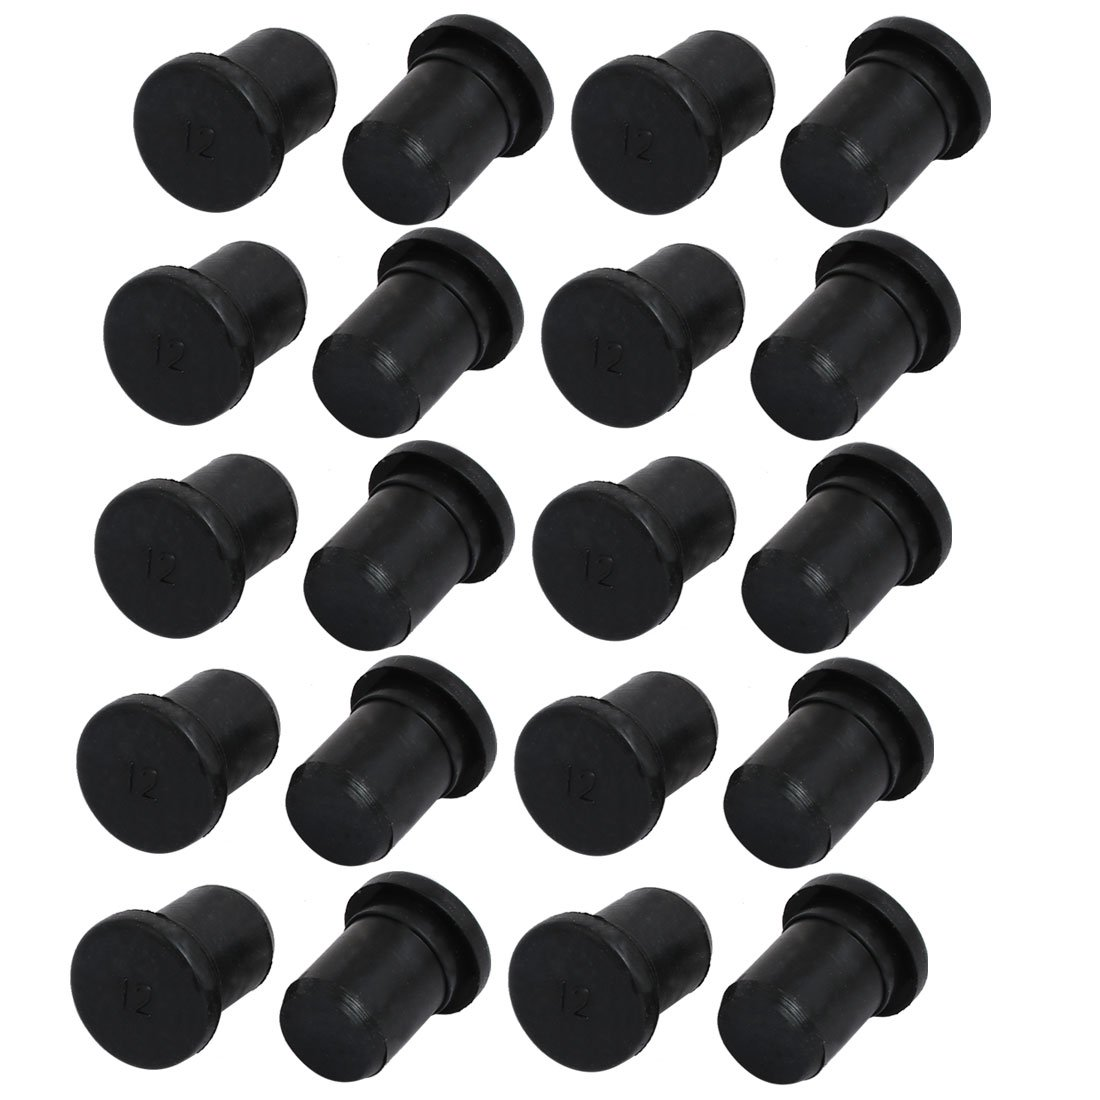 uxcell 20pcs 12mm Dia EPDM Rubber Seal Hole Insert Stopper Black for Cable Gland